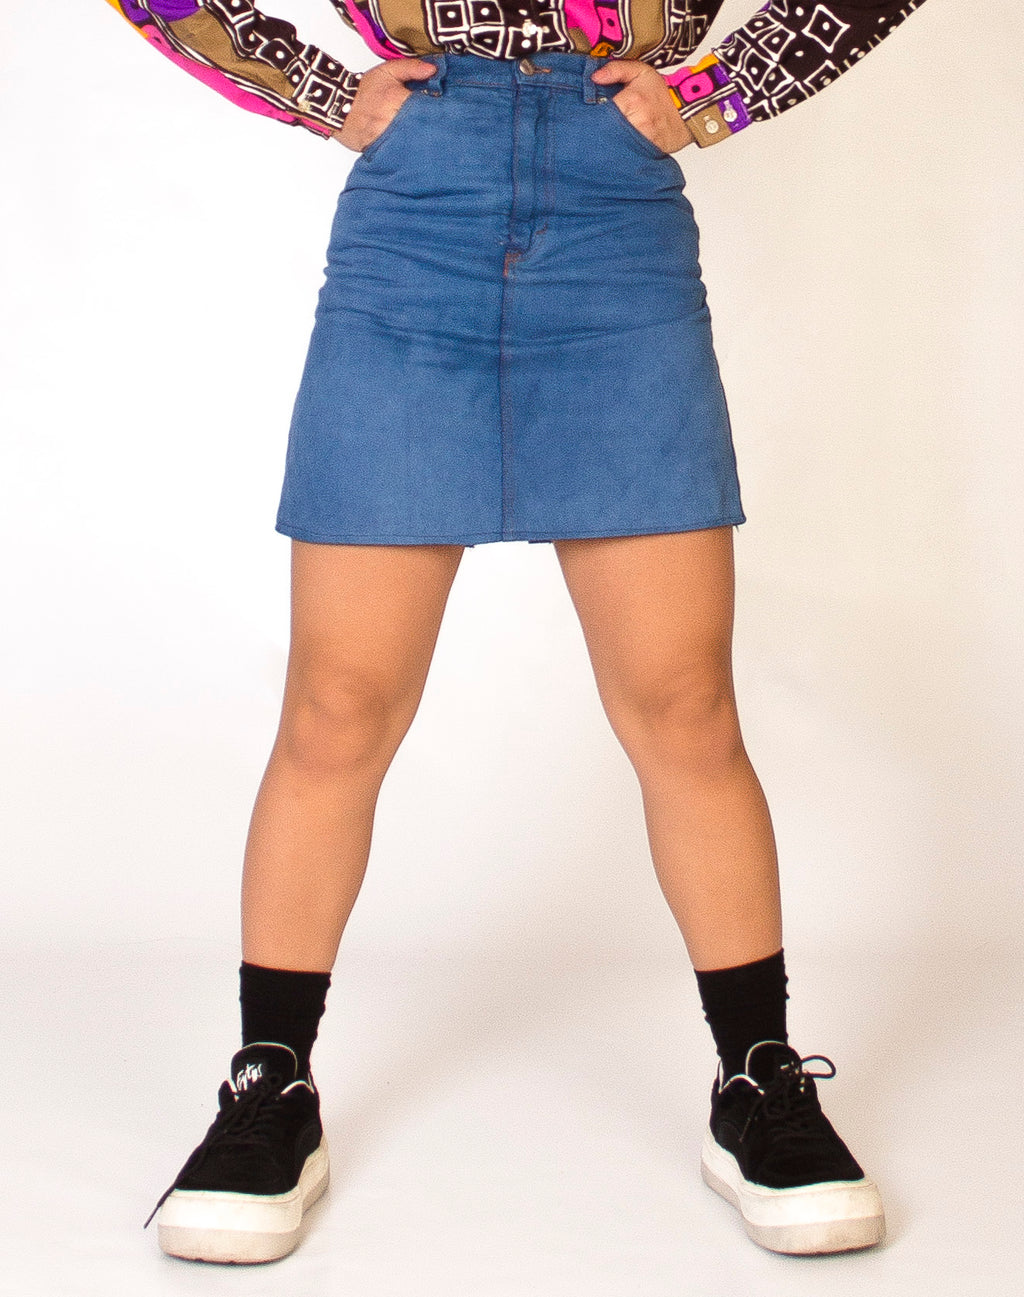 BLUE 70S DENIM MINI SKIRT